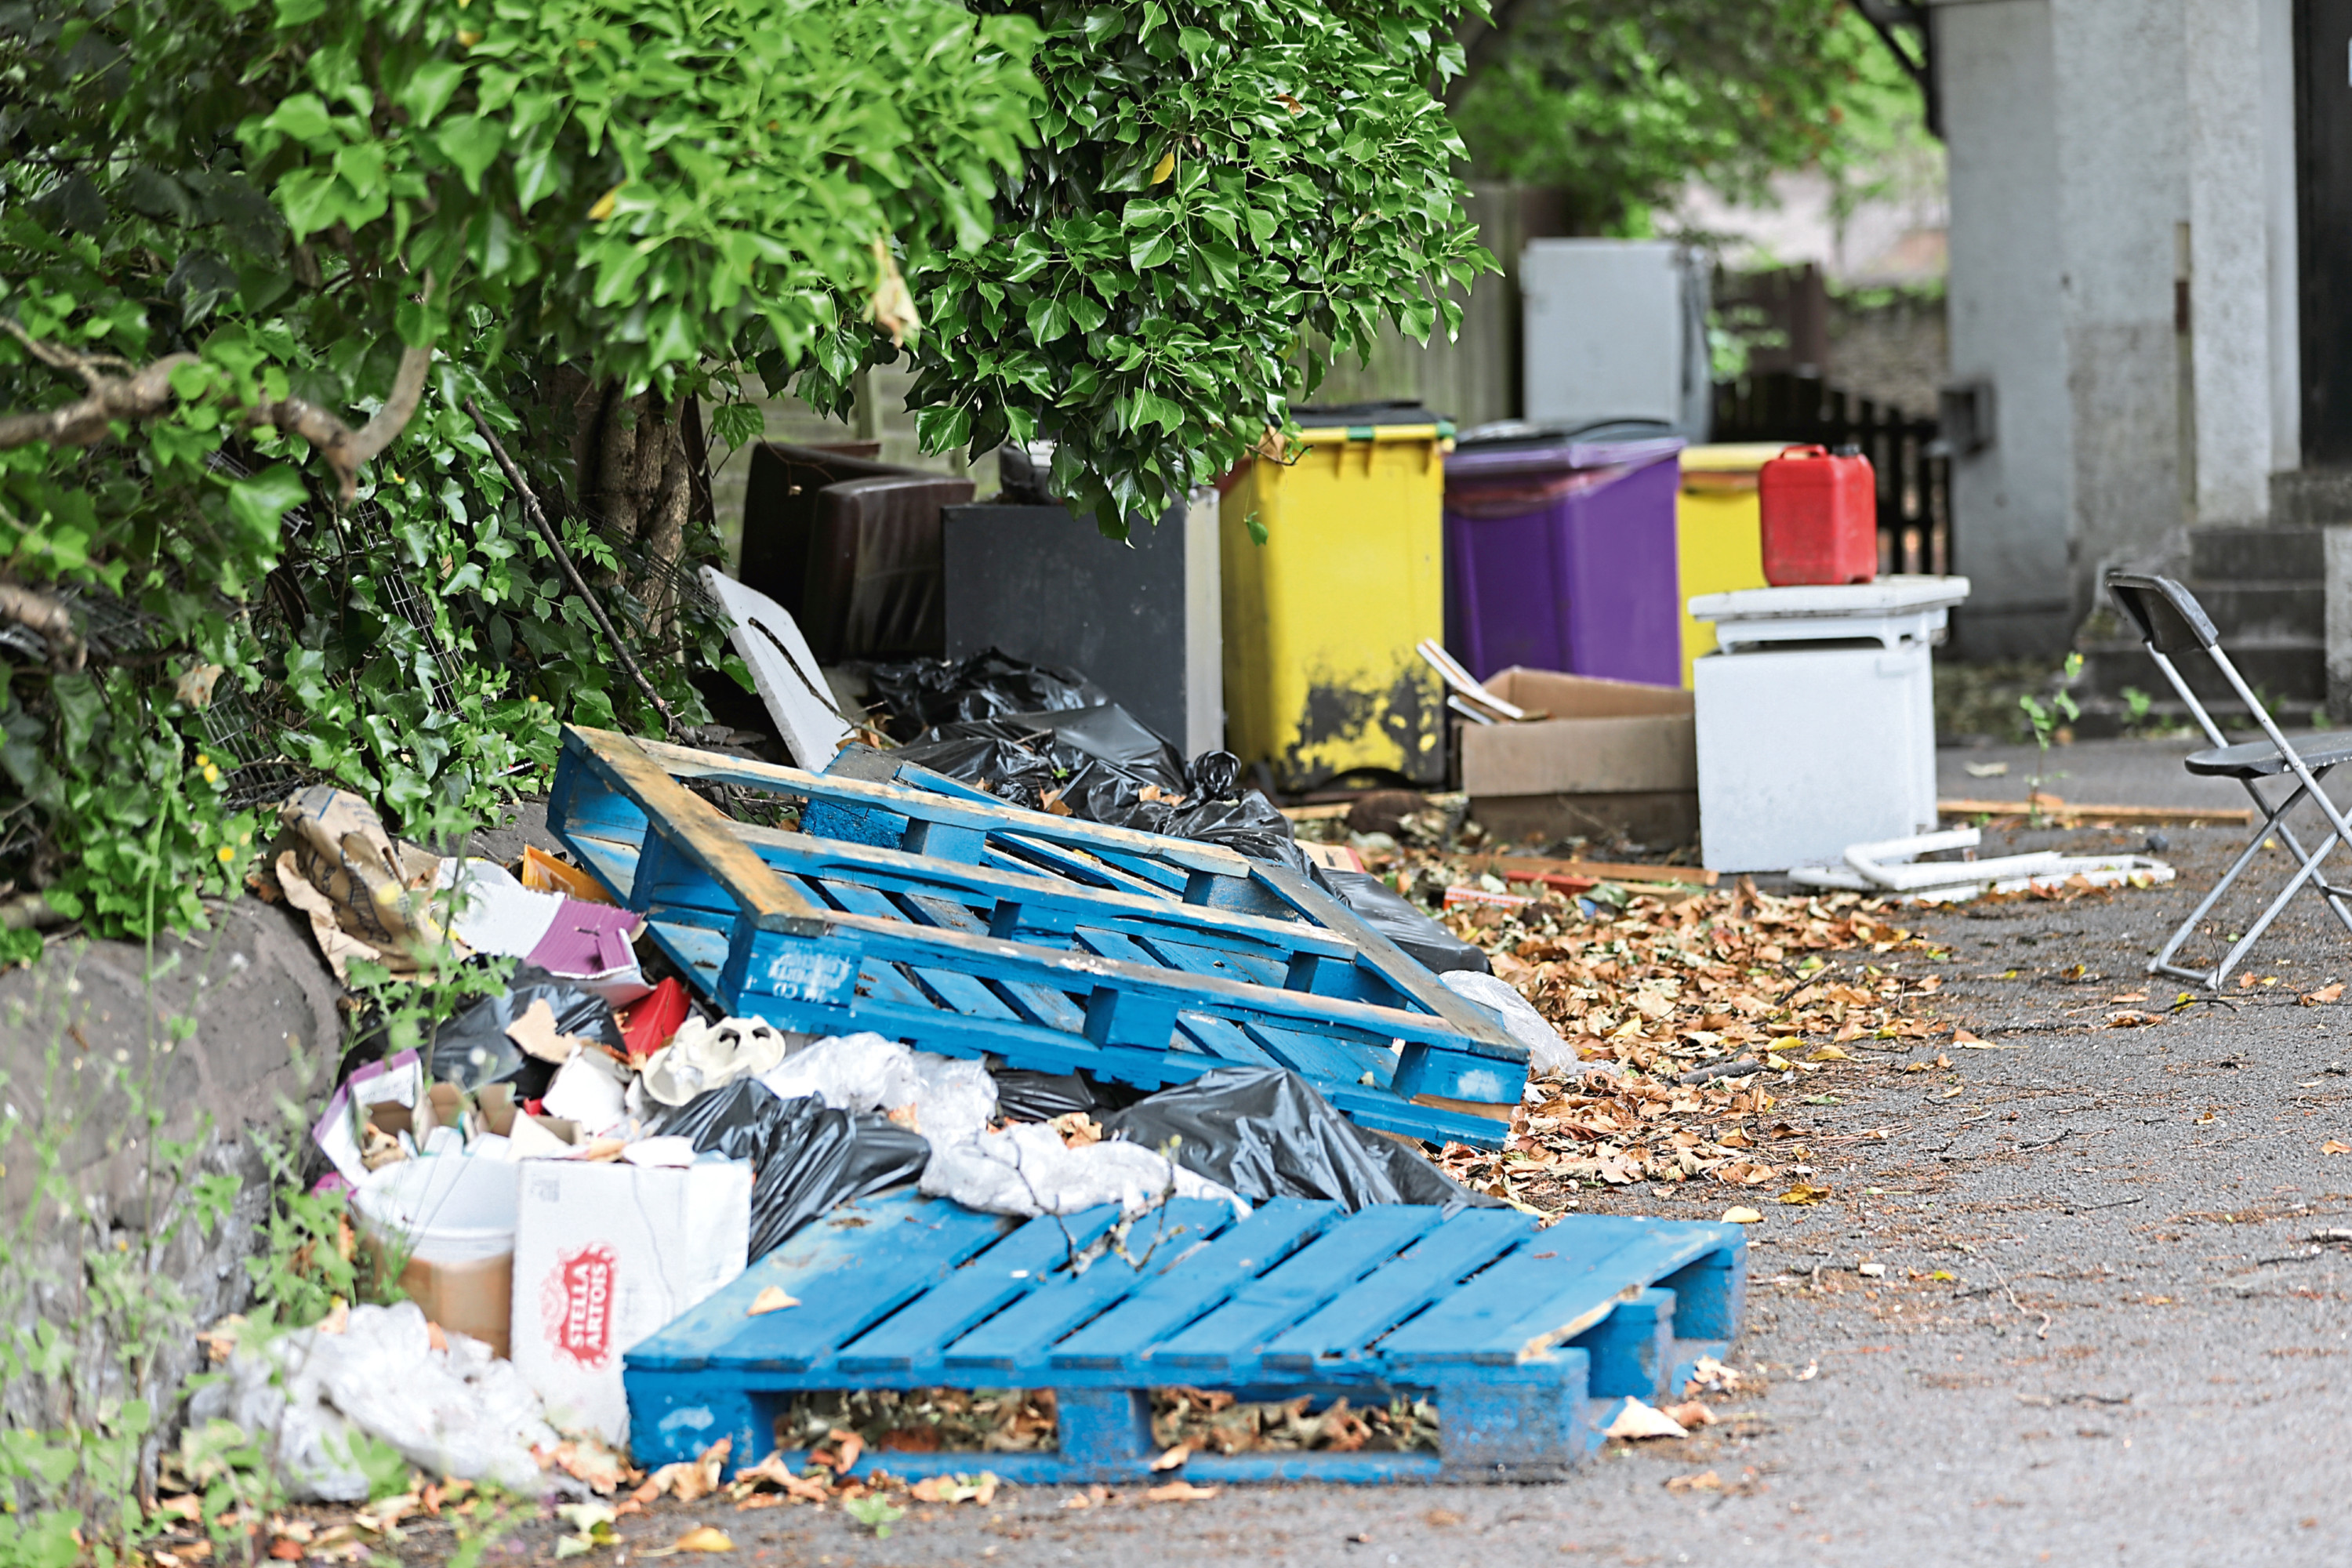 Residents have raised concerns over fly-tipping at the Park House Hotel.